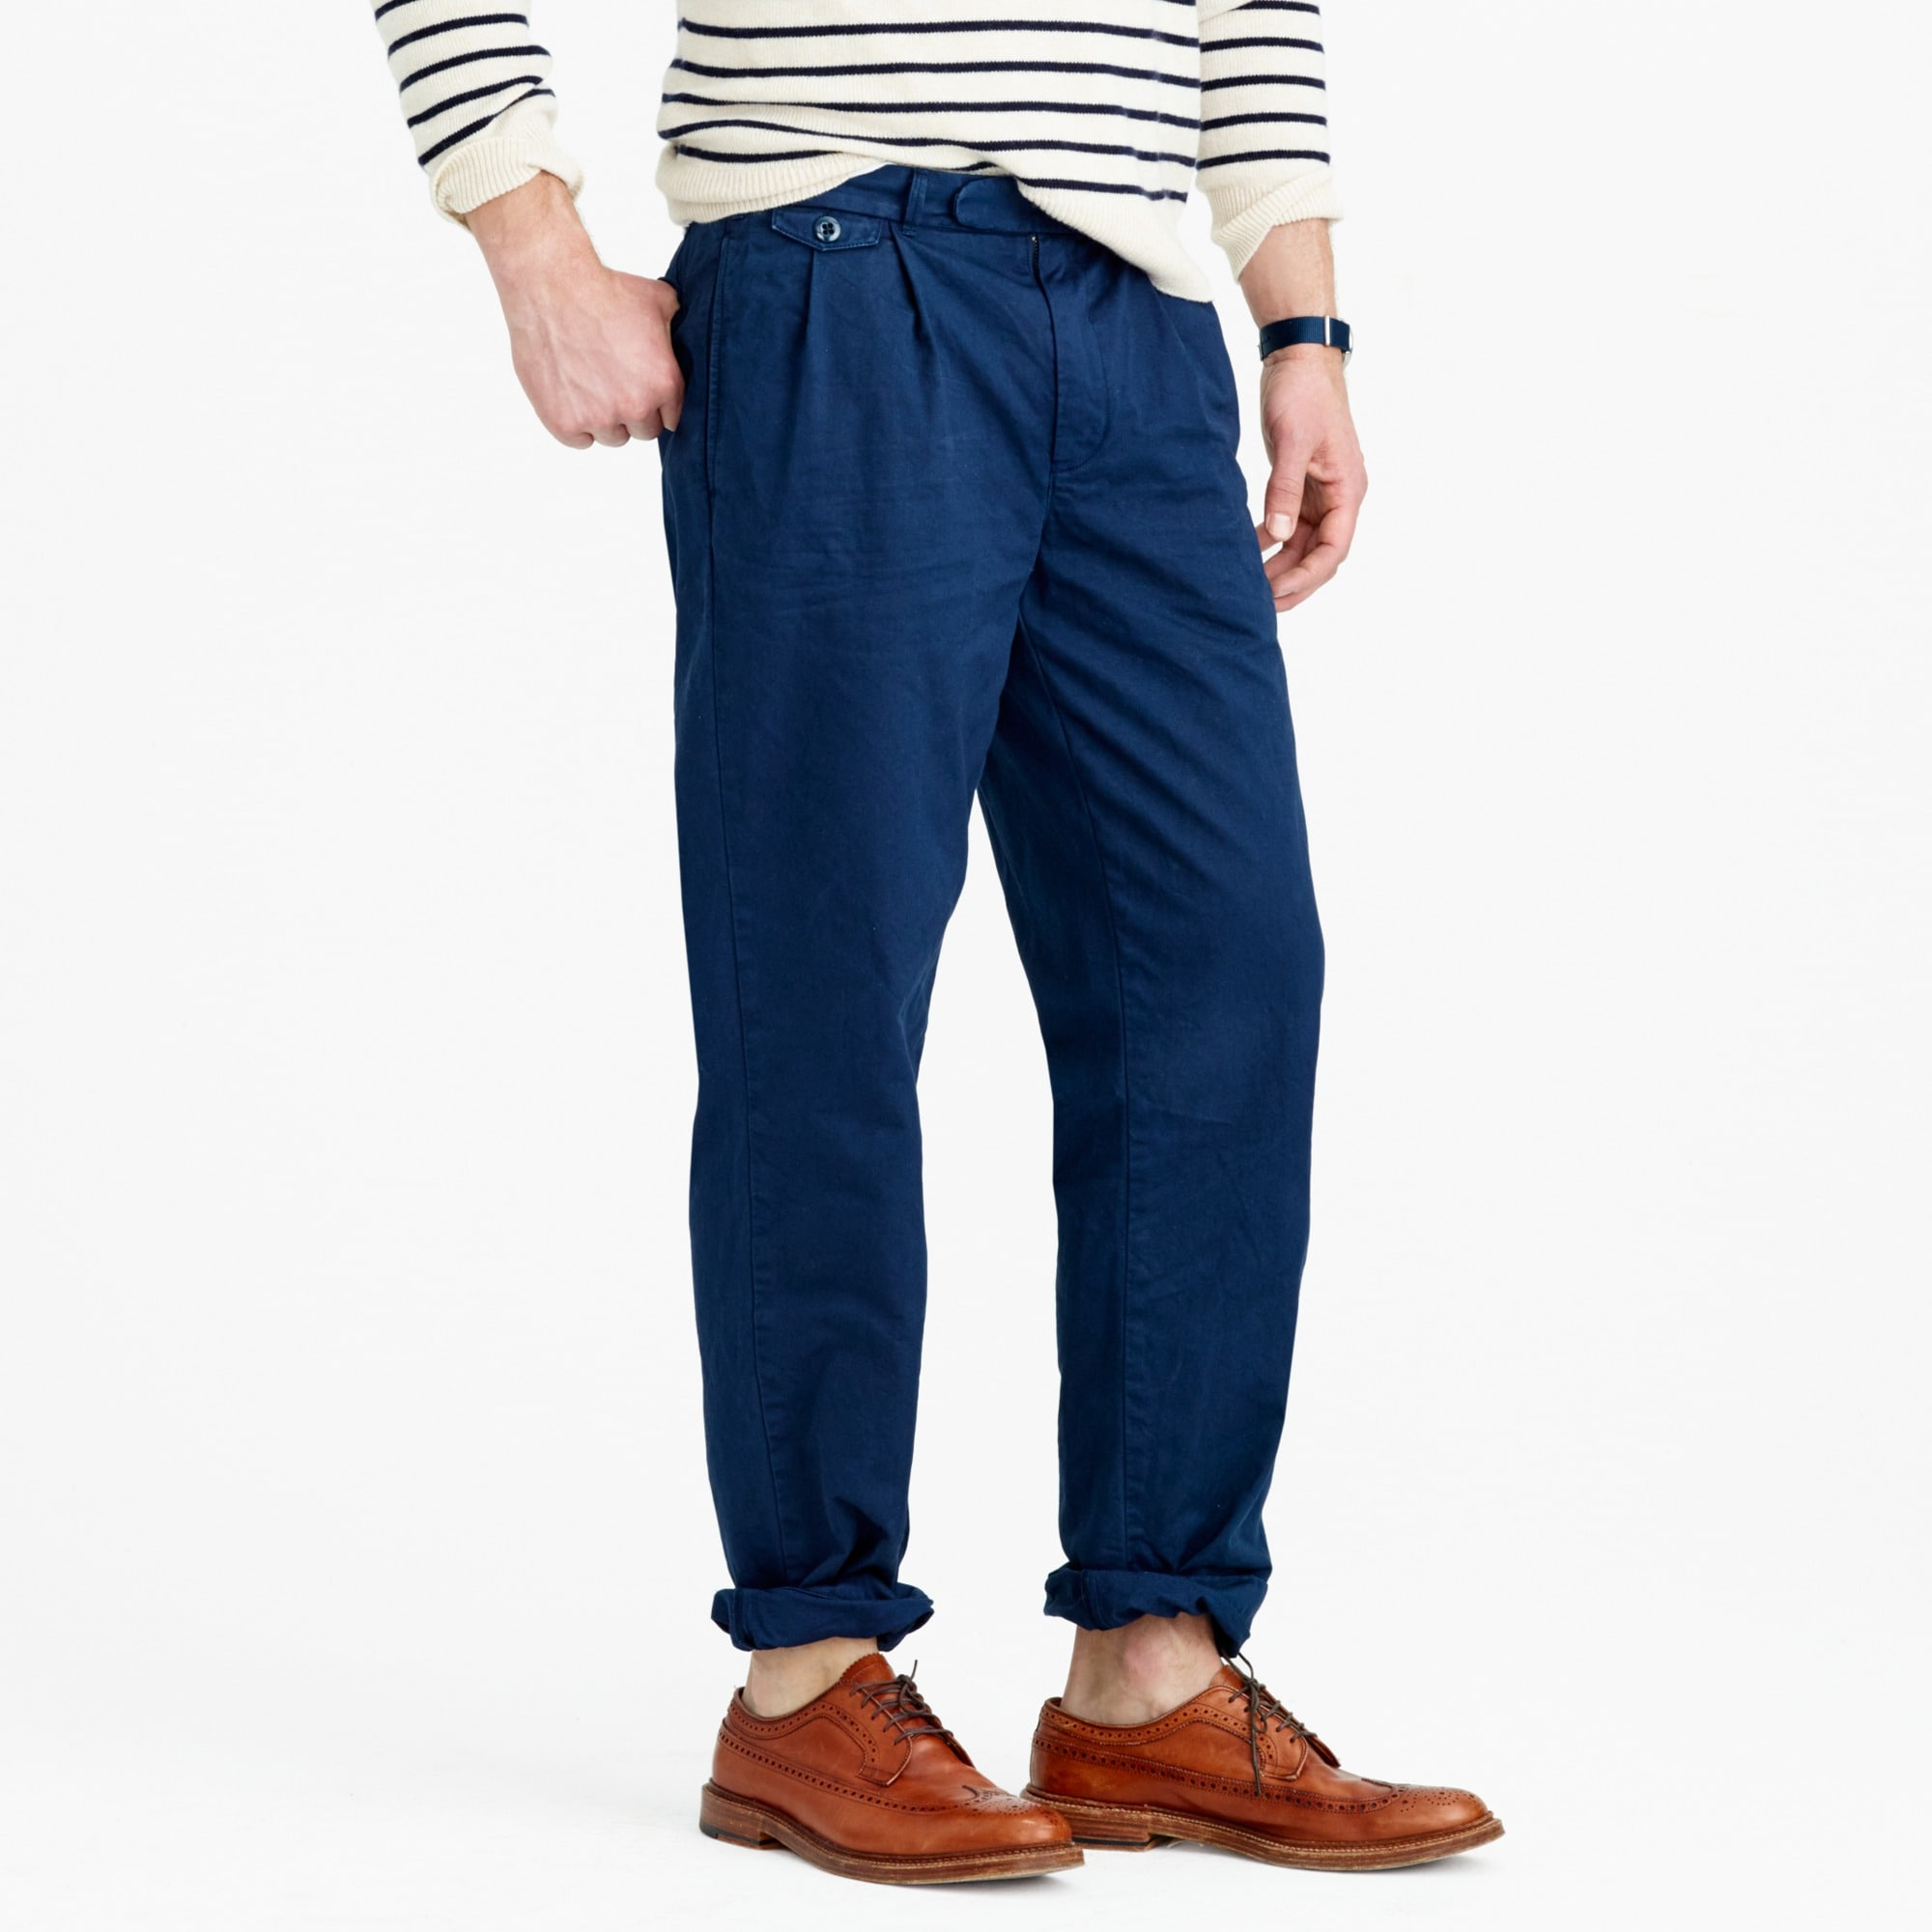 Image 3 for Wallace & Barnes double-pleated relaxed-fit military chino pant